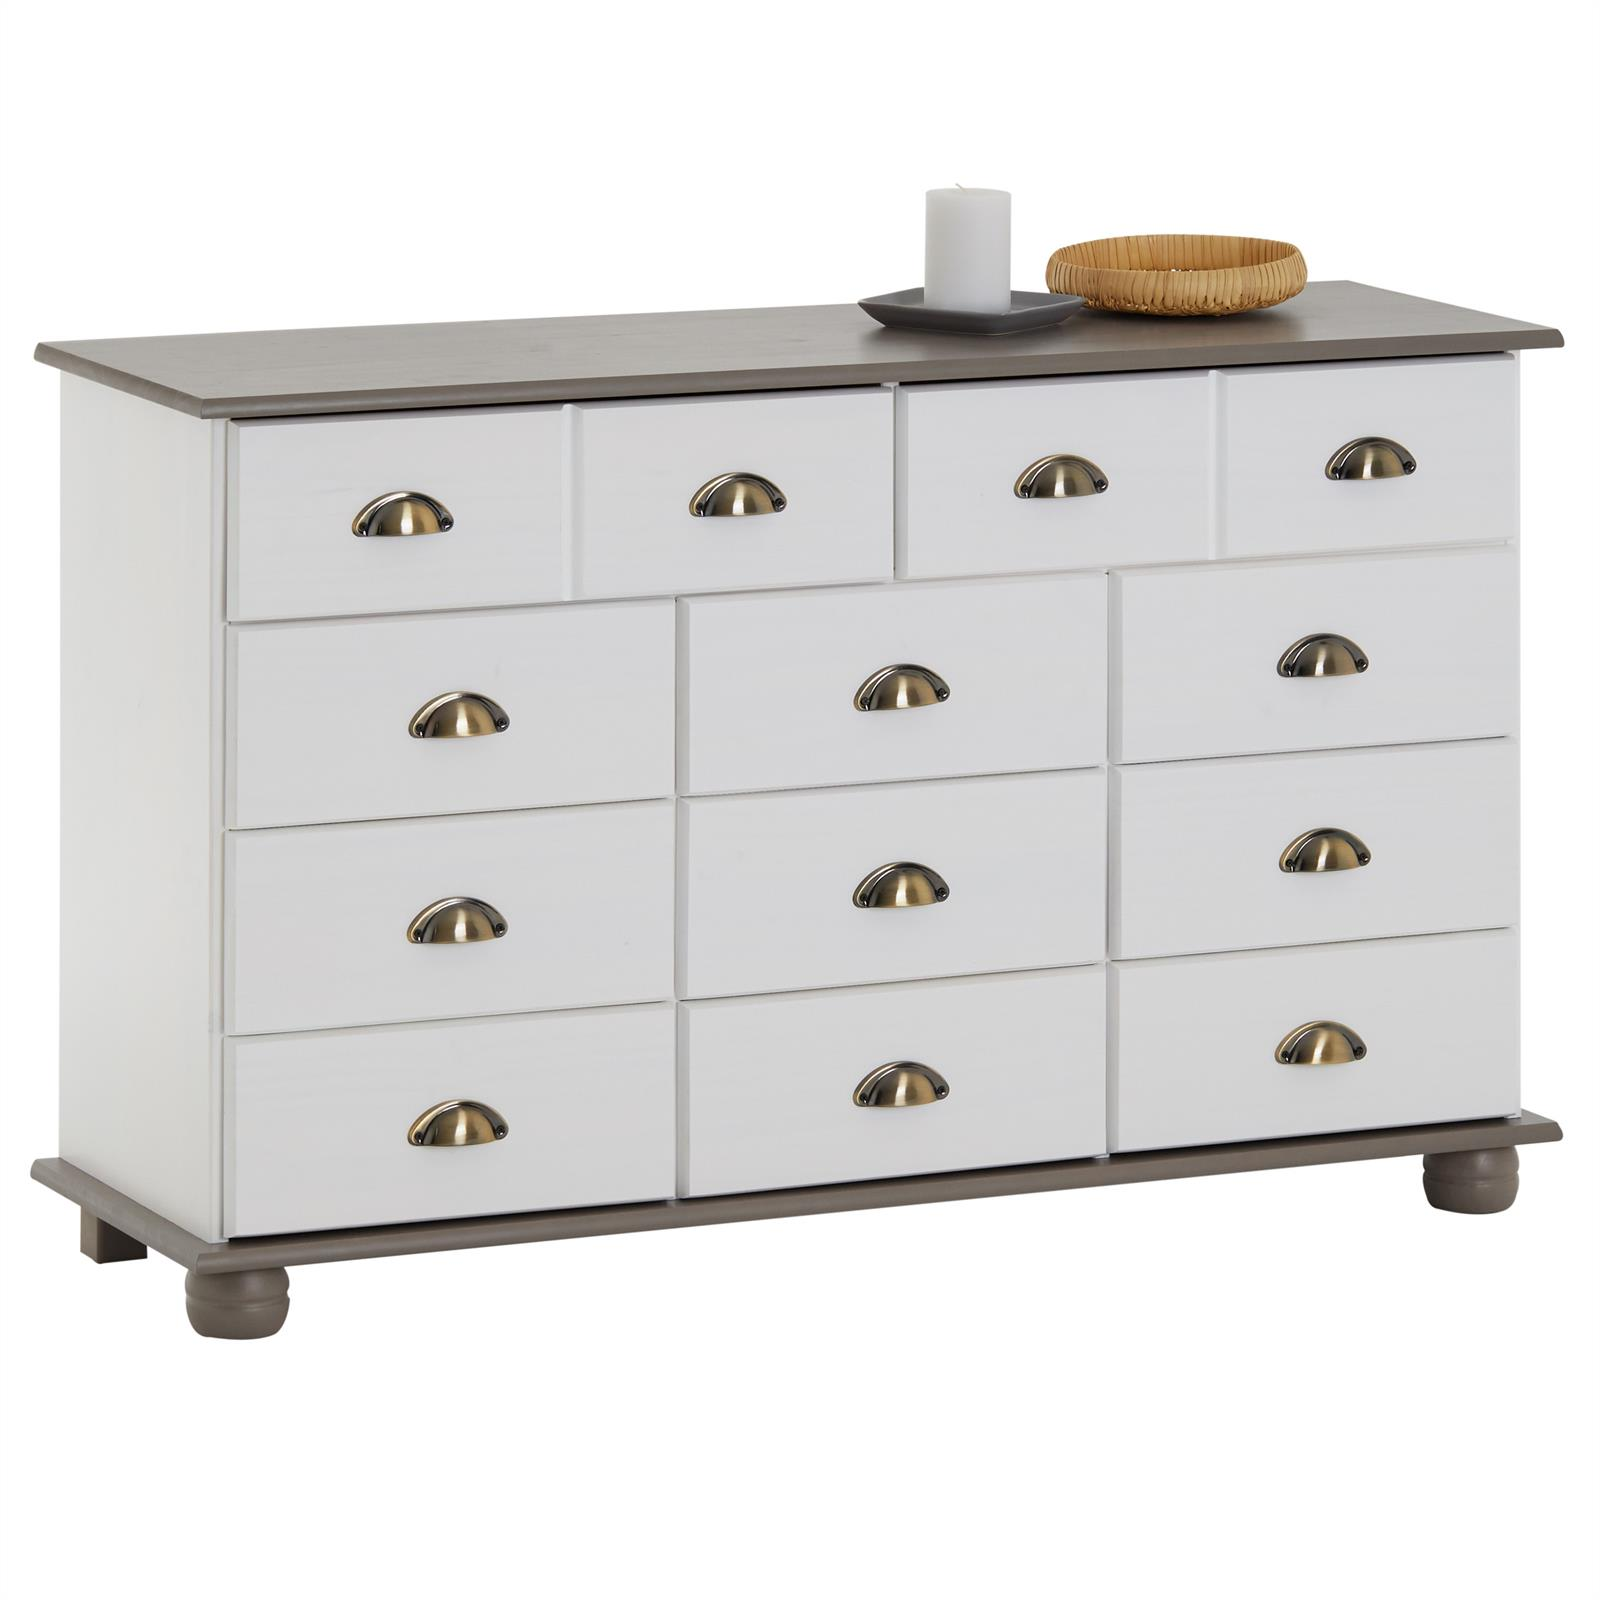 Commode-apothicaire-chiffonnier-11-tiroirs-pin-massif